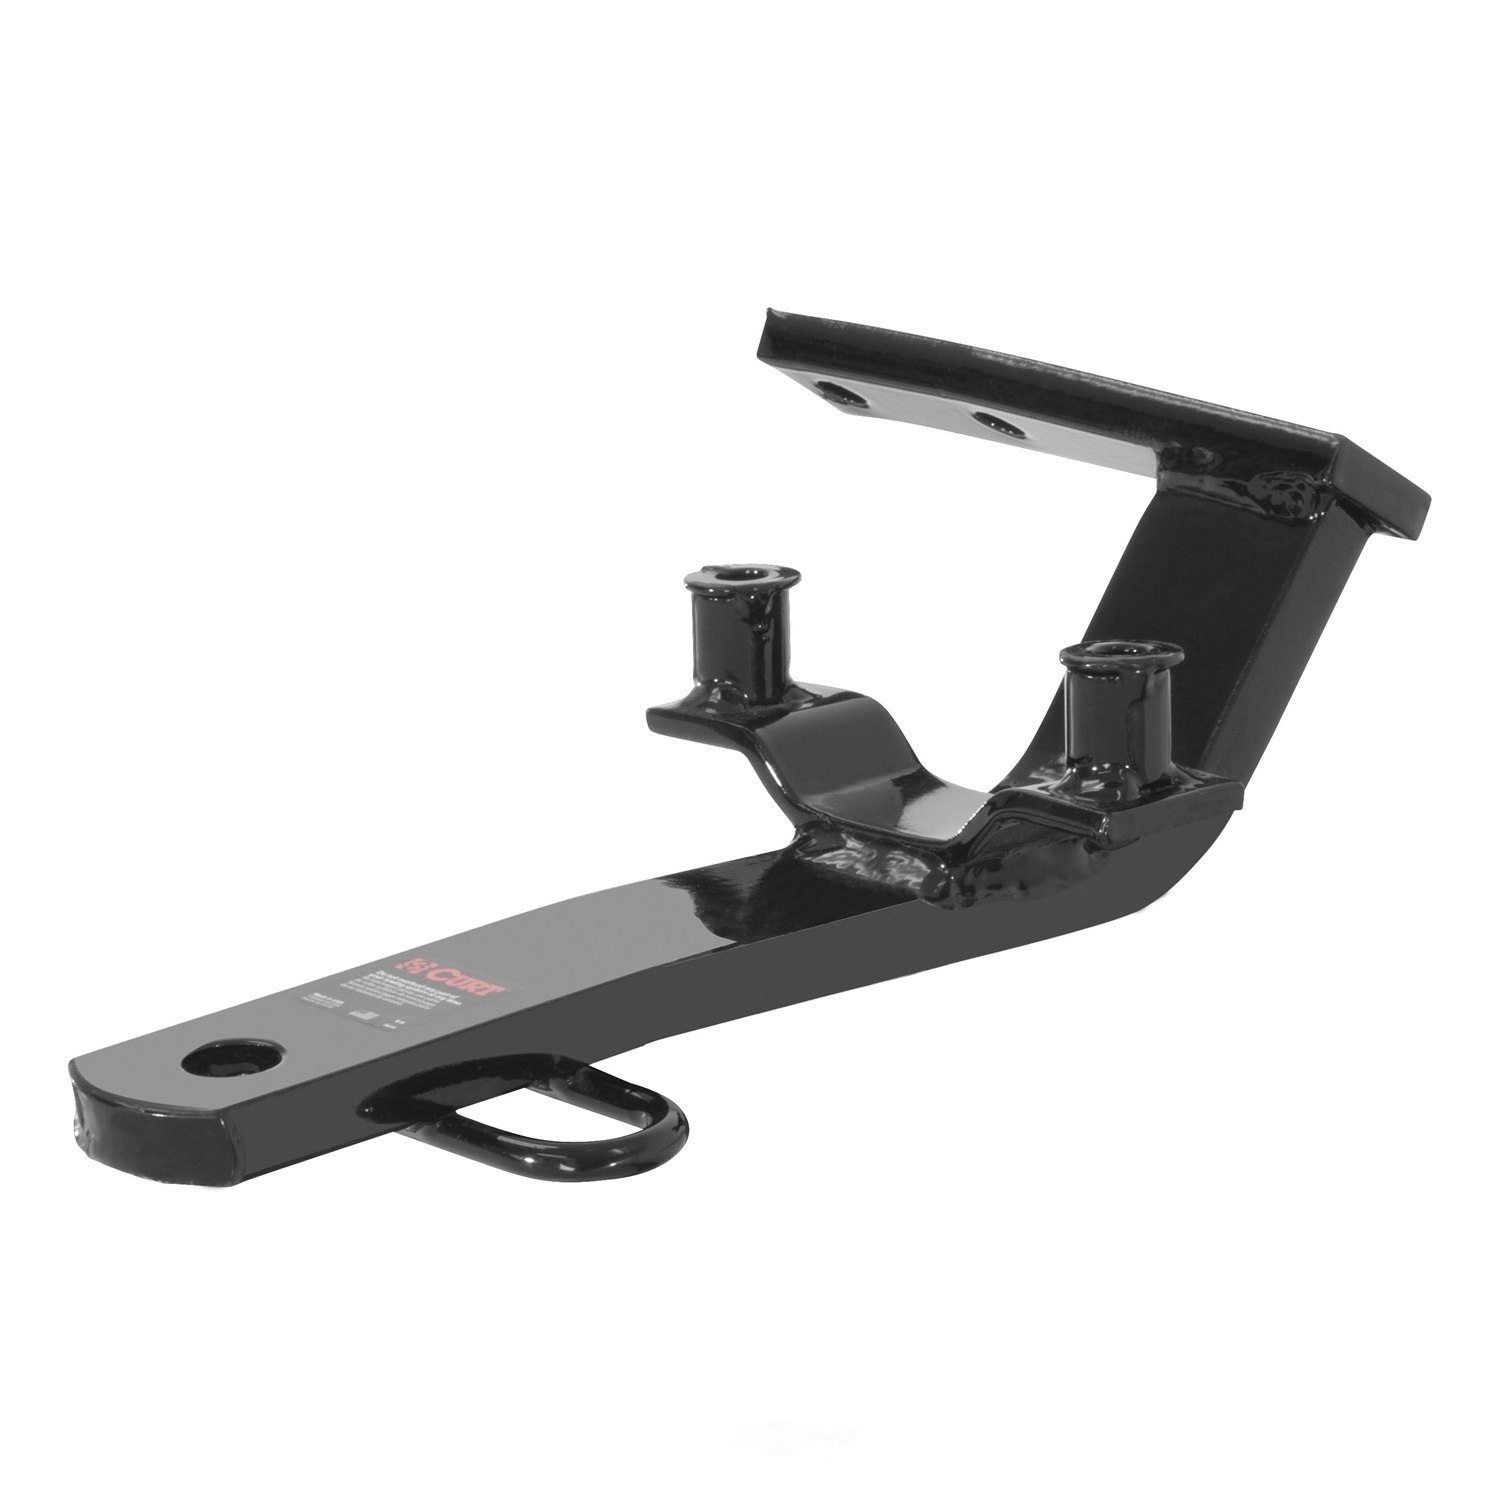 CURT MFG INC. - Class I 1.25 in. Receiver Hitch (Rear) - CUR 11537